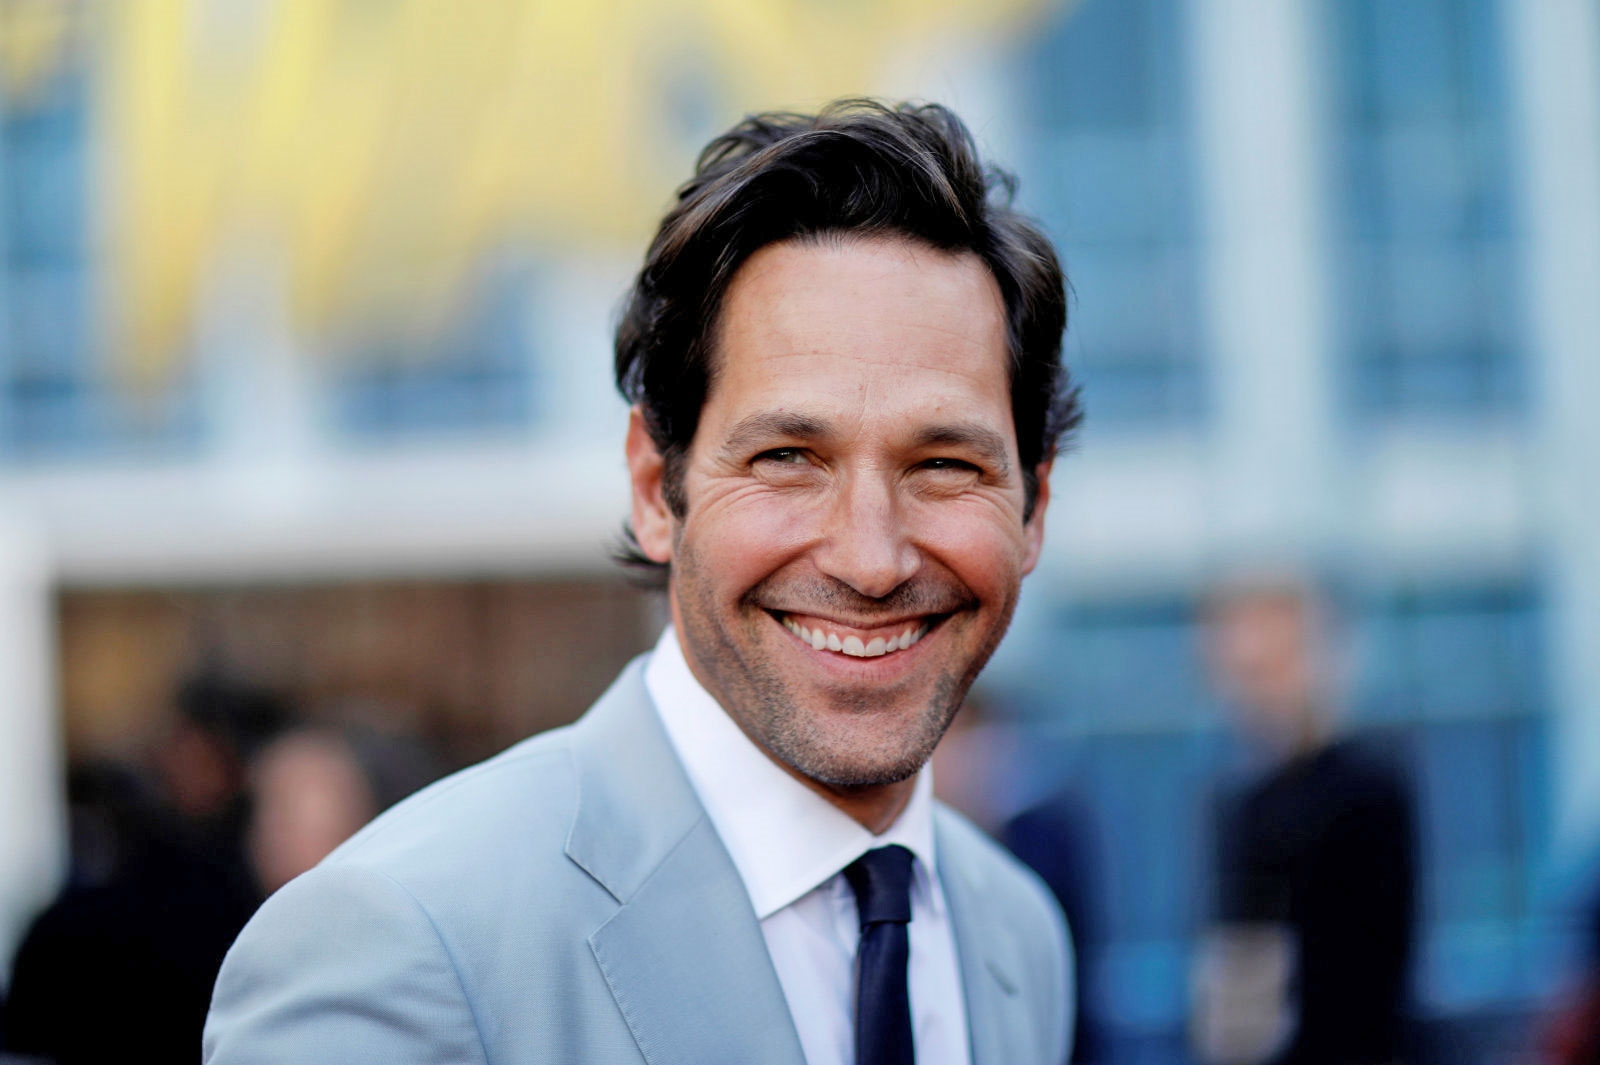 Paul Rudd will play dual roles in a new Netflix comedy series | DeviceDaily.com